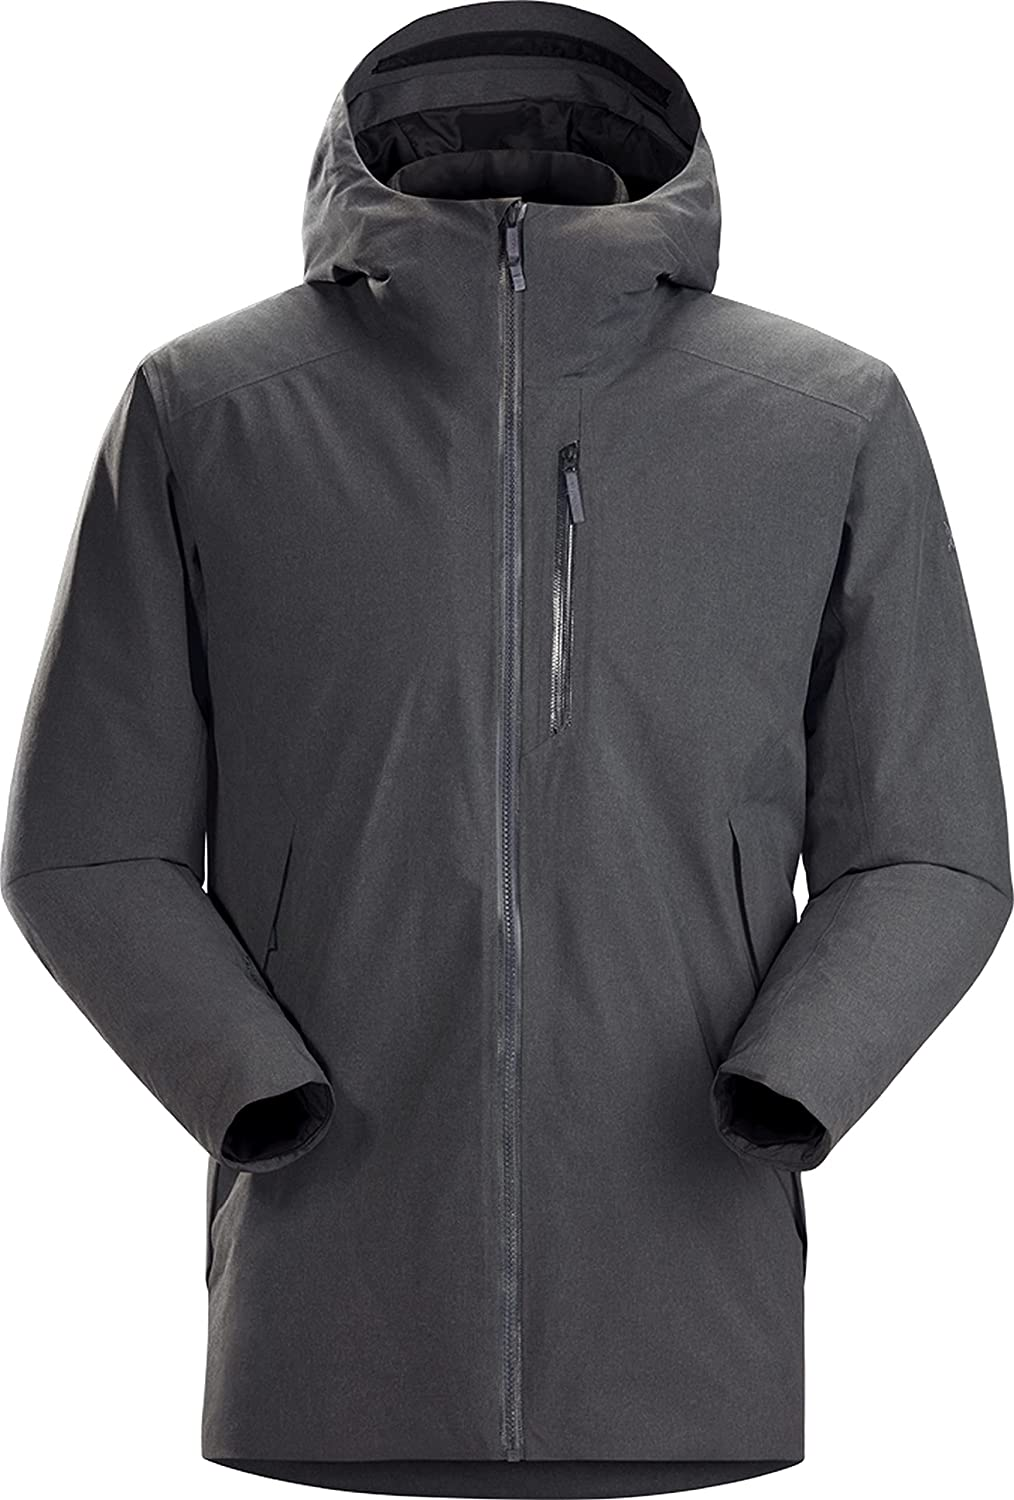 Arc'teryx Radsten Parka Men's | Waterproof, synthetically Insulated Thigh Length Parka for City Living.